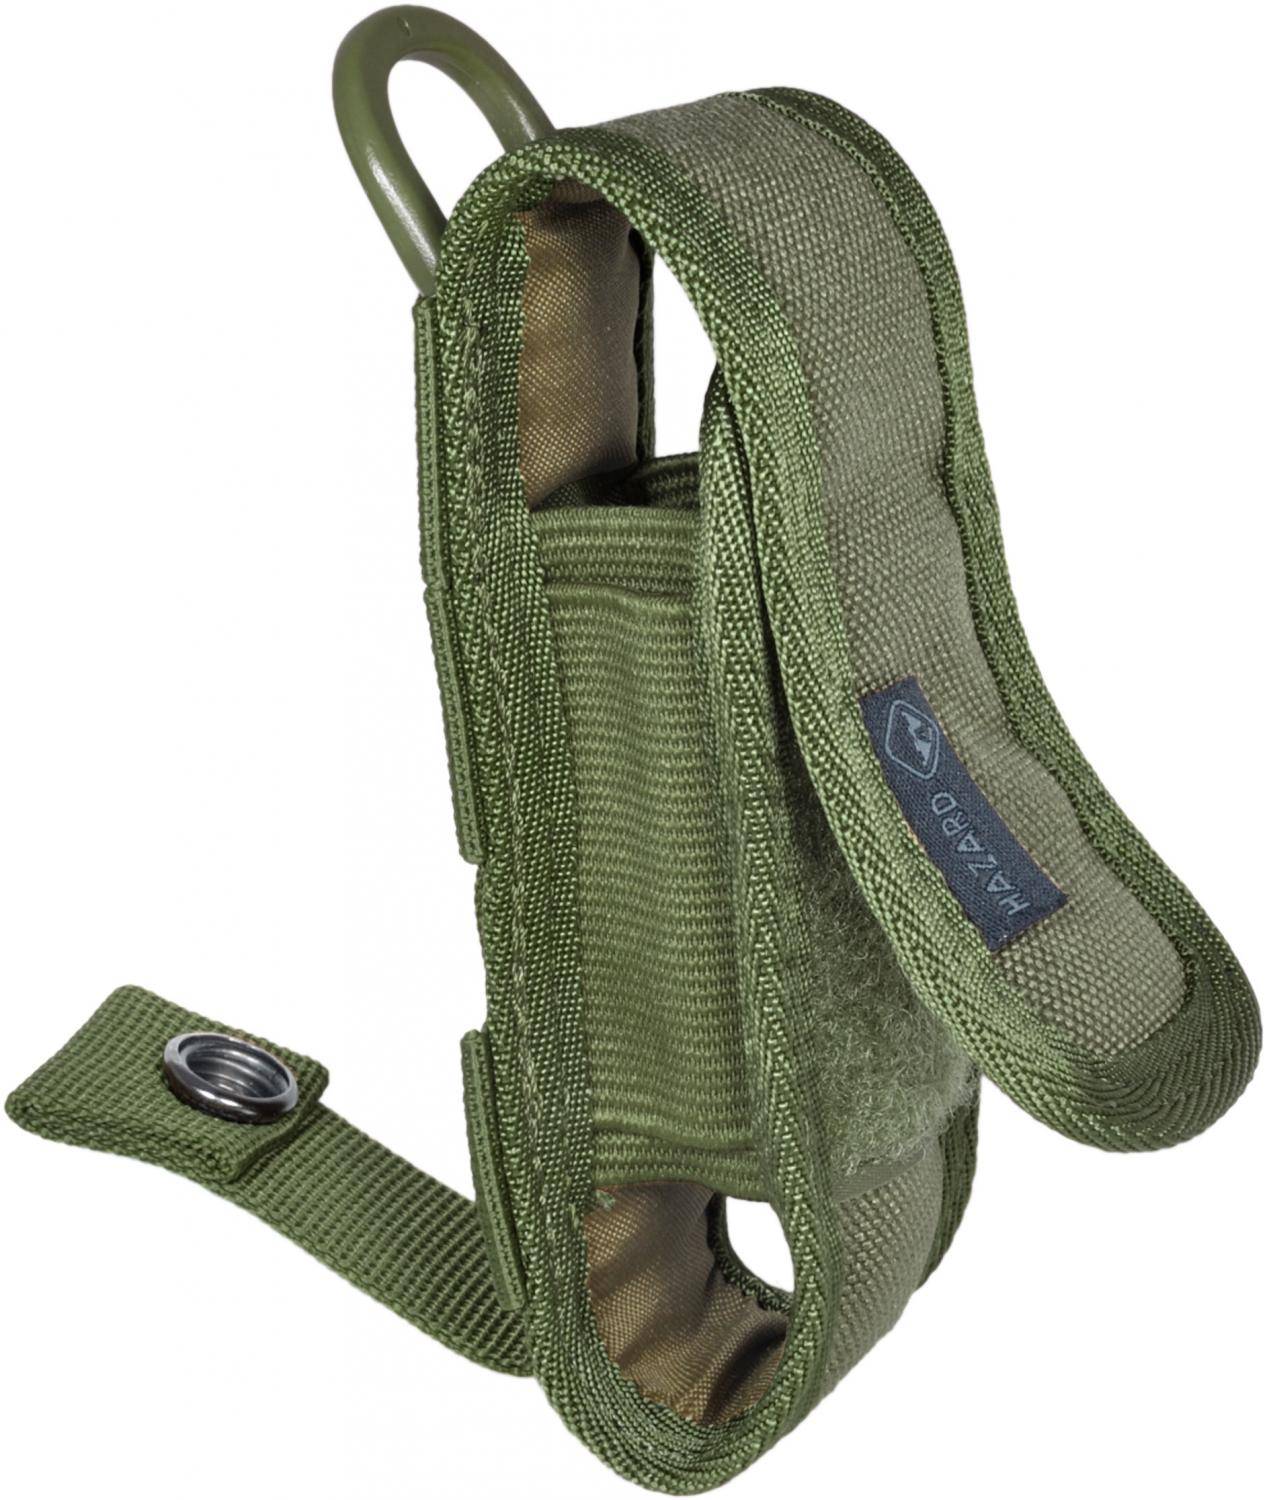 Hazard 4 Mil-Koala Multi-Sheath, OD Green